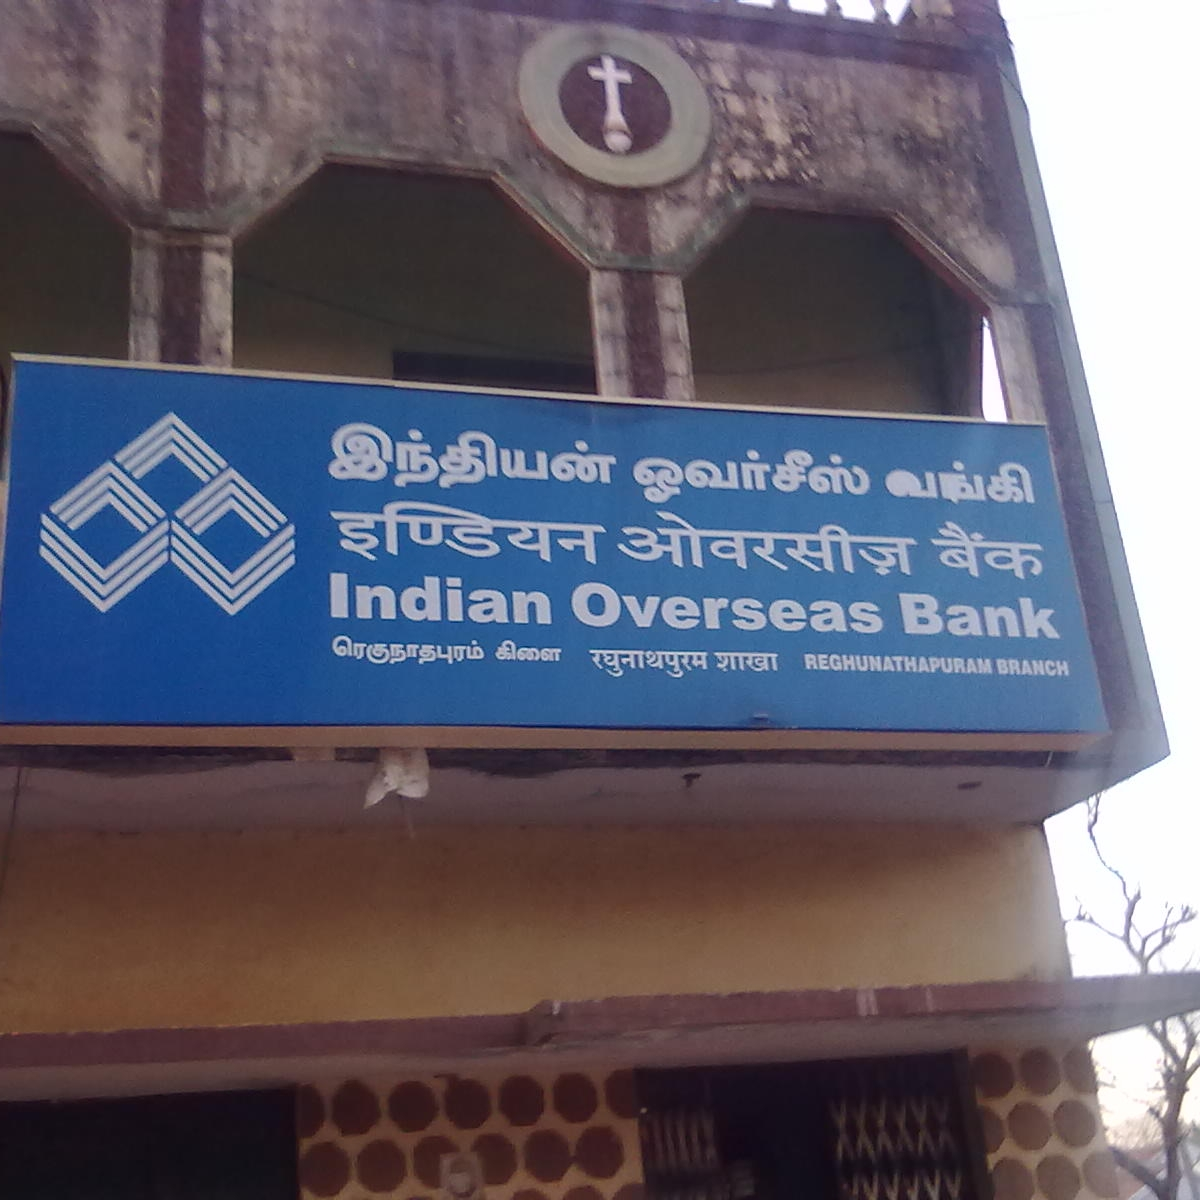 Indian Overseas Bank Q1 profit at Rs 121 crore